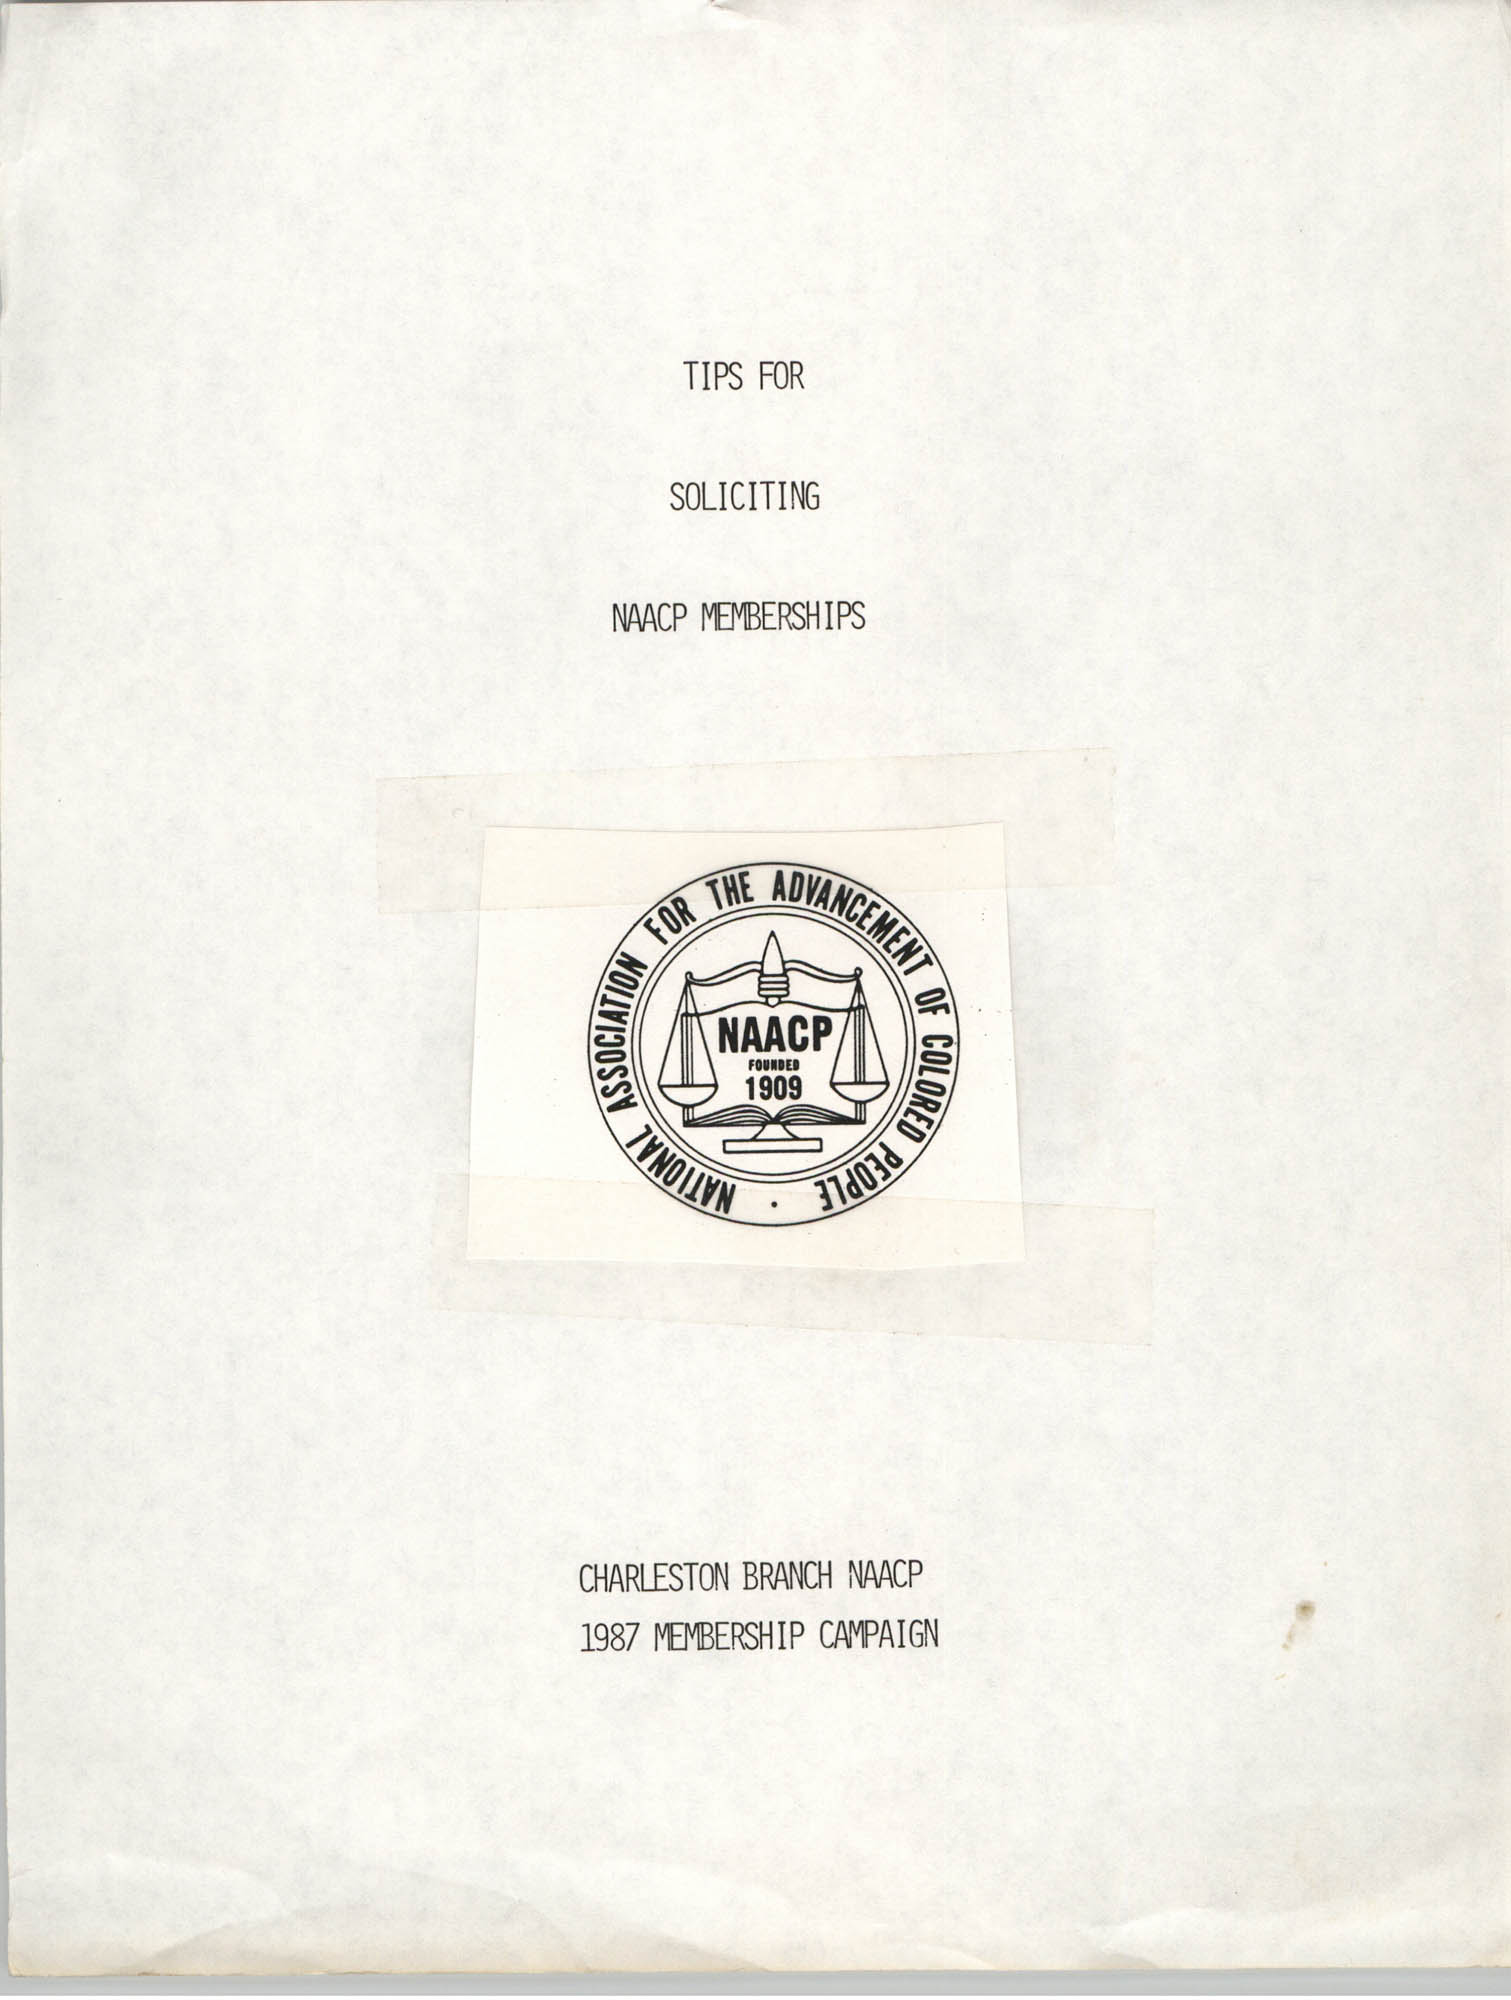 Tips for Soliciting NAACP Members, Pamphlet, Charleston Branch of the NAACP, 1987